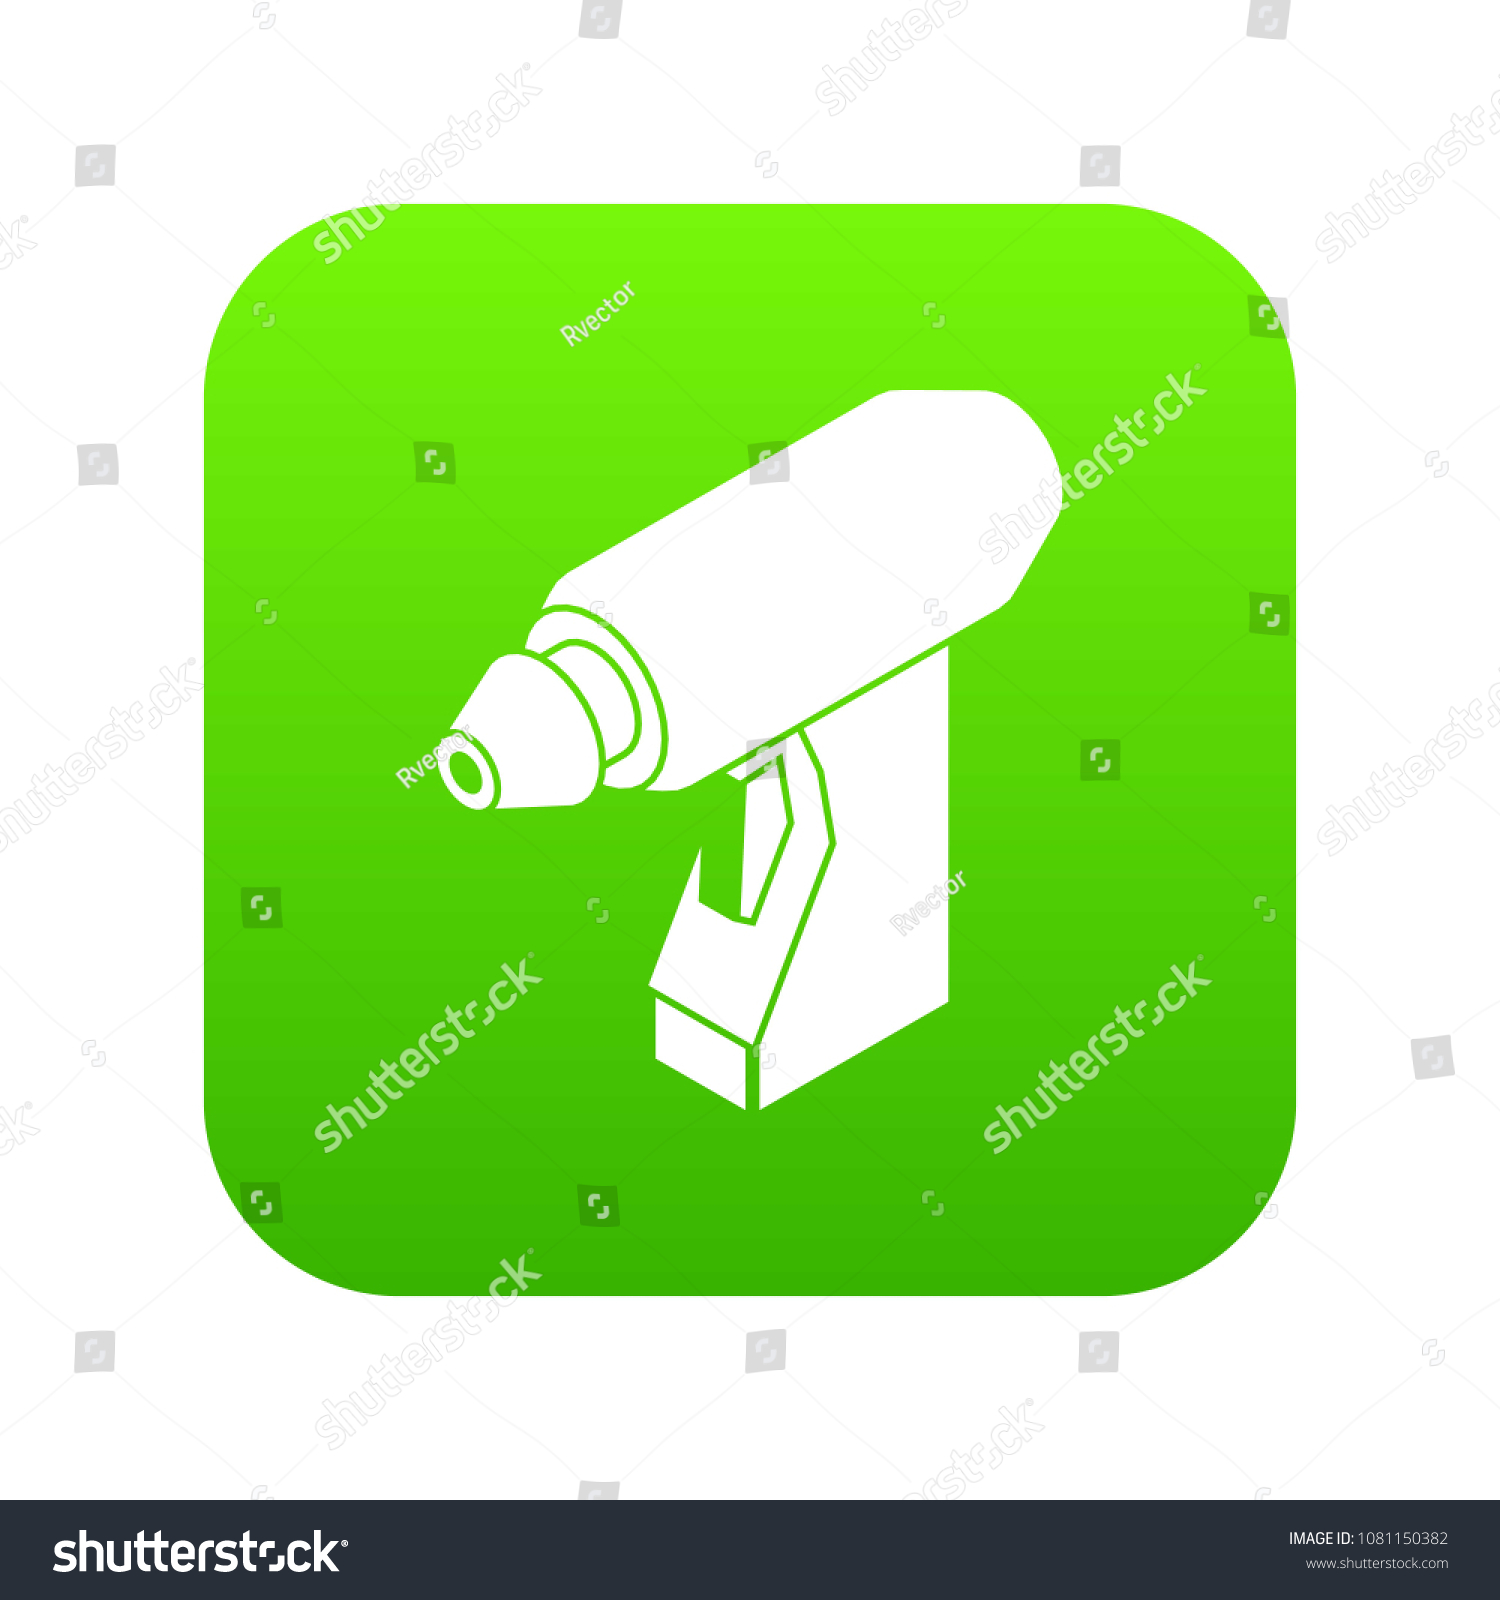 Manual Welding Torch Icon Green Vector Stock Royalty Free Diagram Of Isolated On White Background